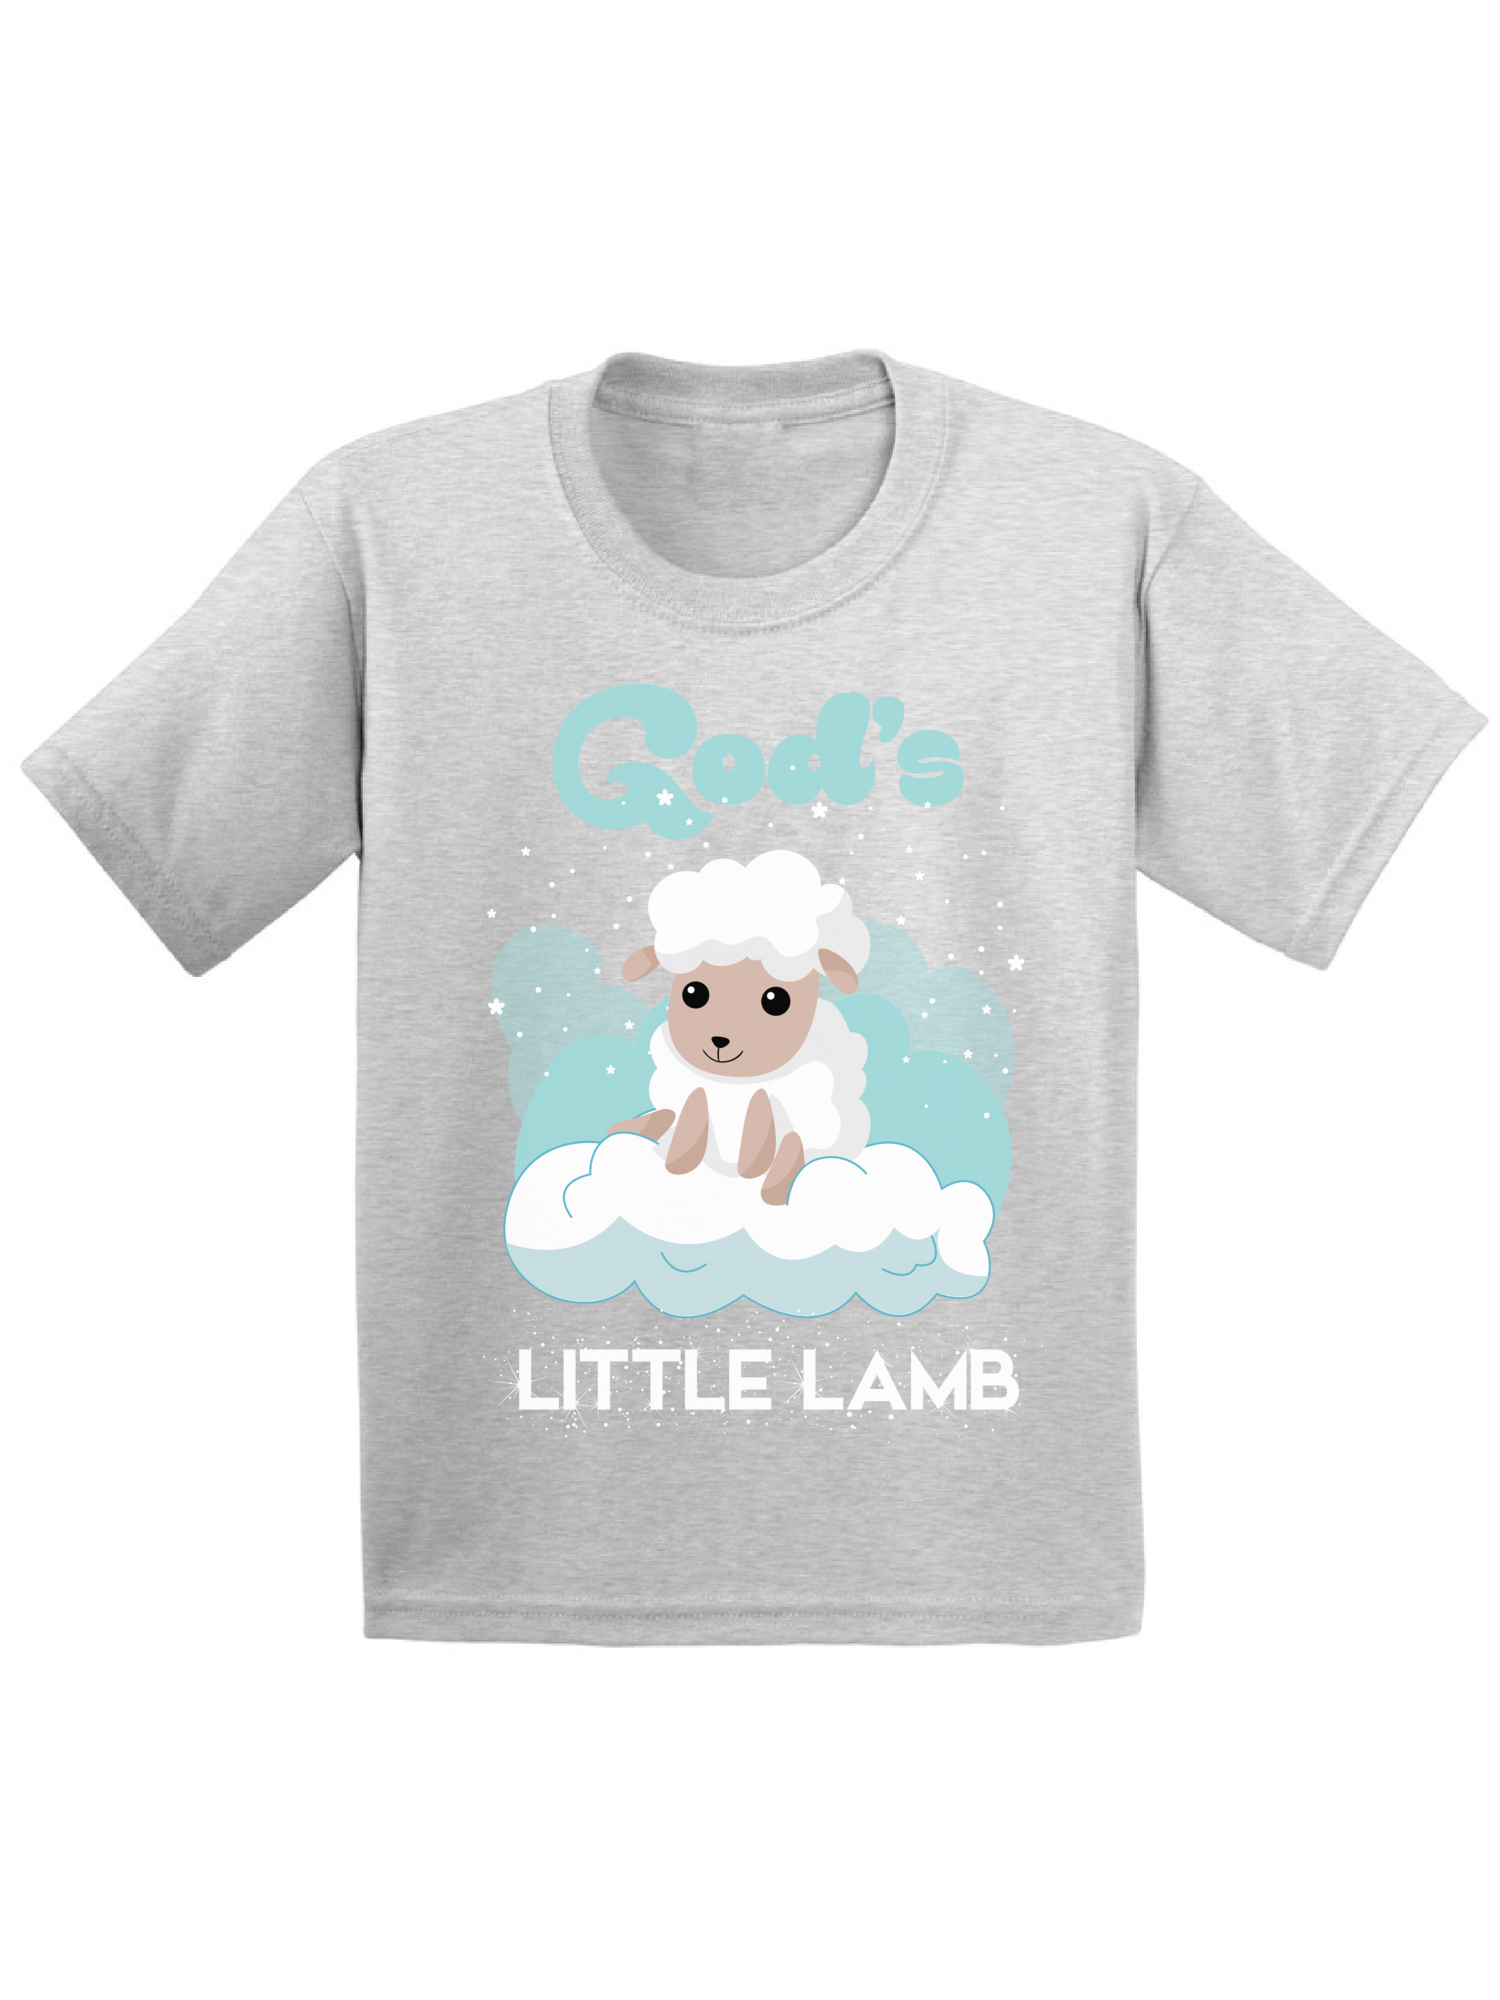 Bichon Frise on the Lawn T Shirt Pick Your Size Youth Medium to 6 X Large